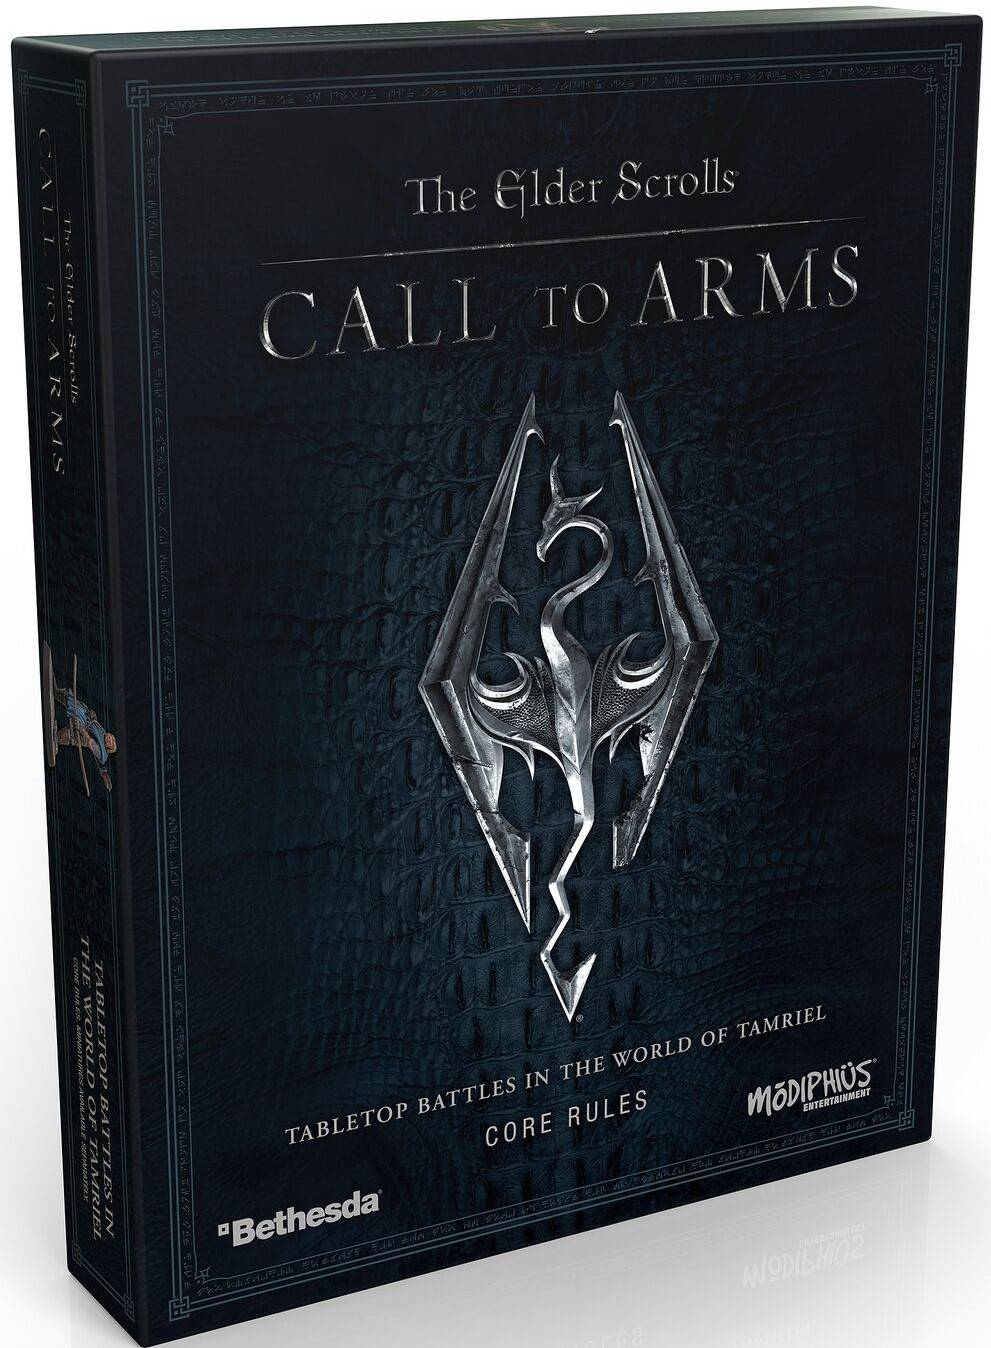 Elder Scrolls Call to Arms Core Rules Box Tabletop Battles in the World of Tamriel